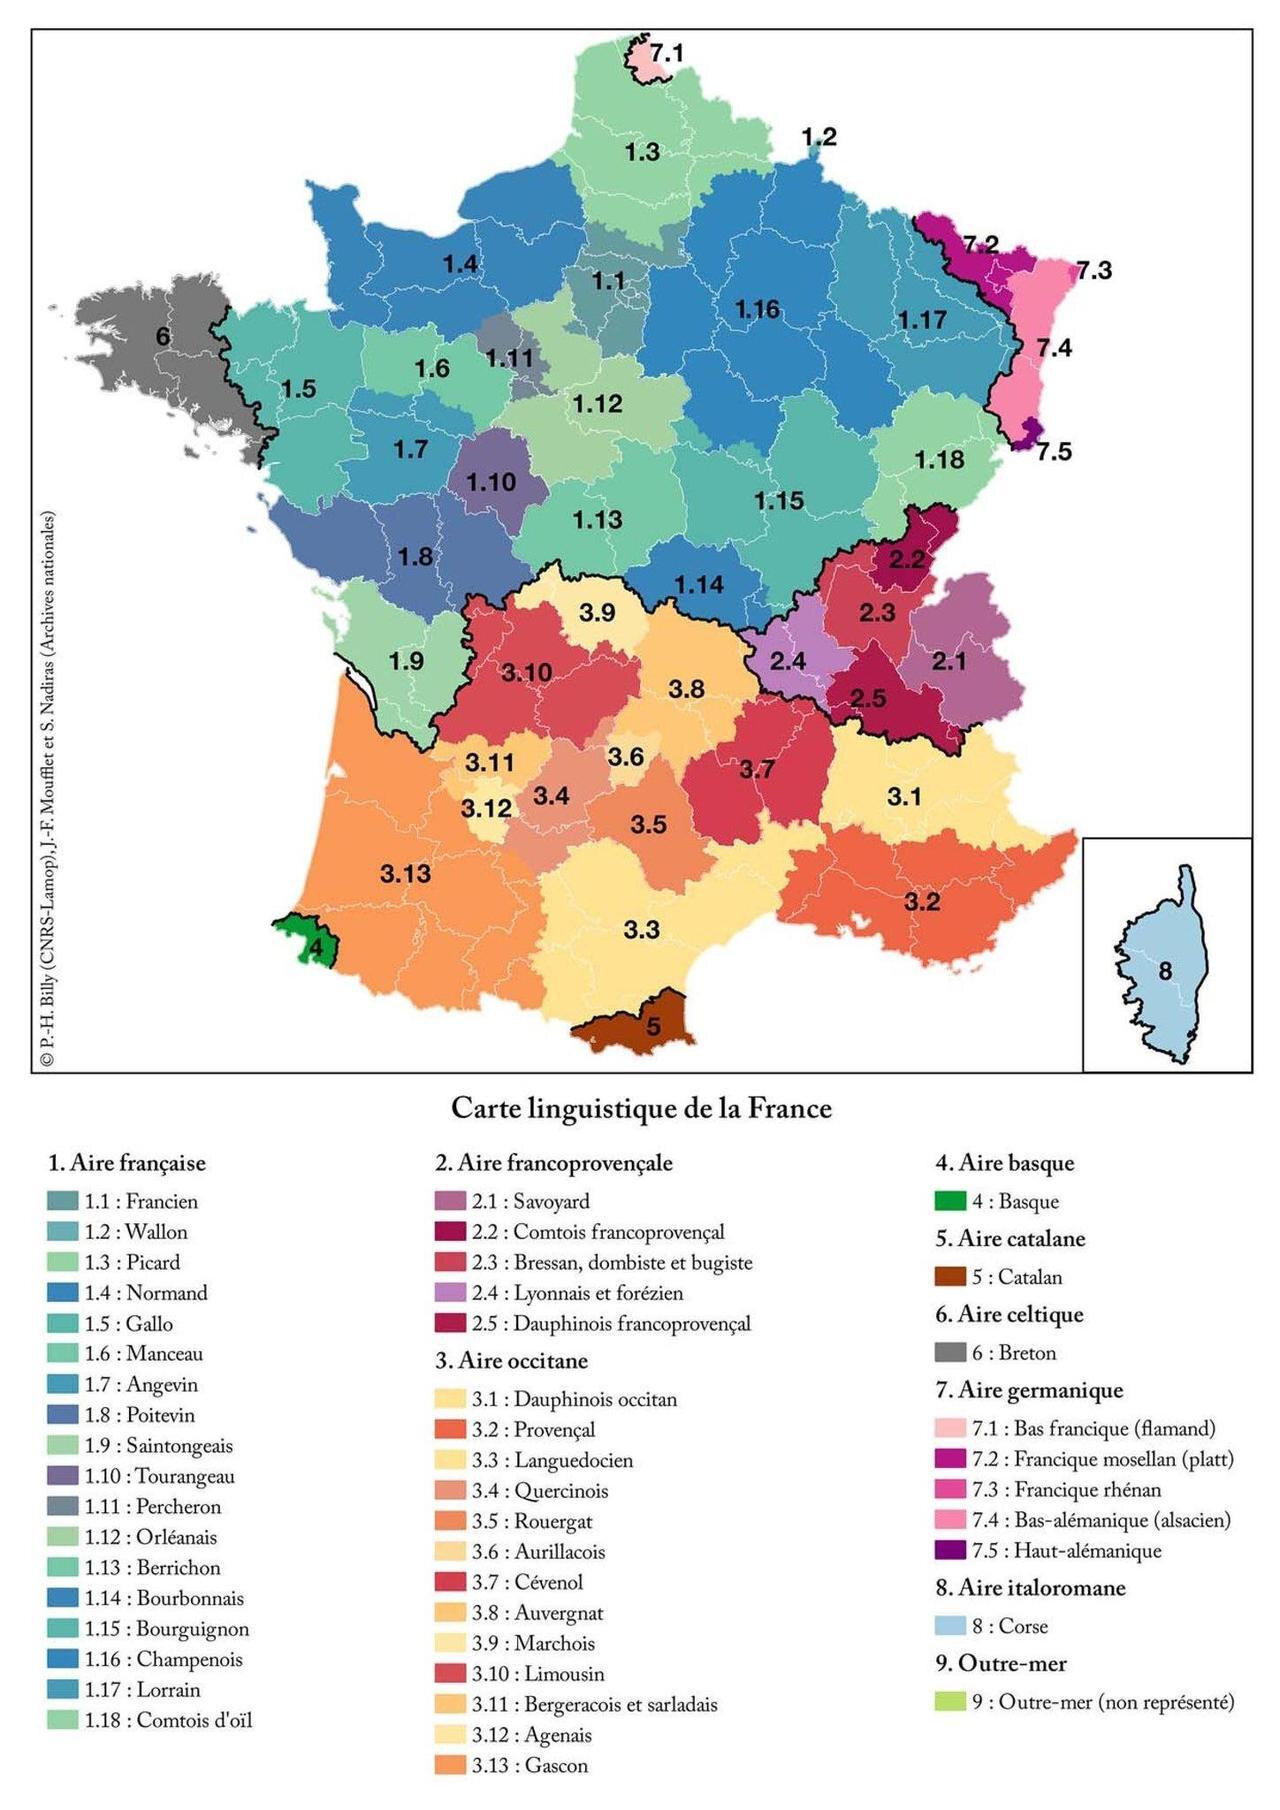 A map of dialects and regional languages of France